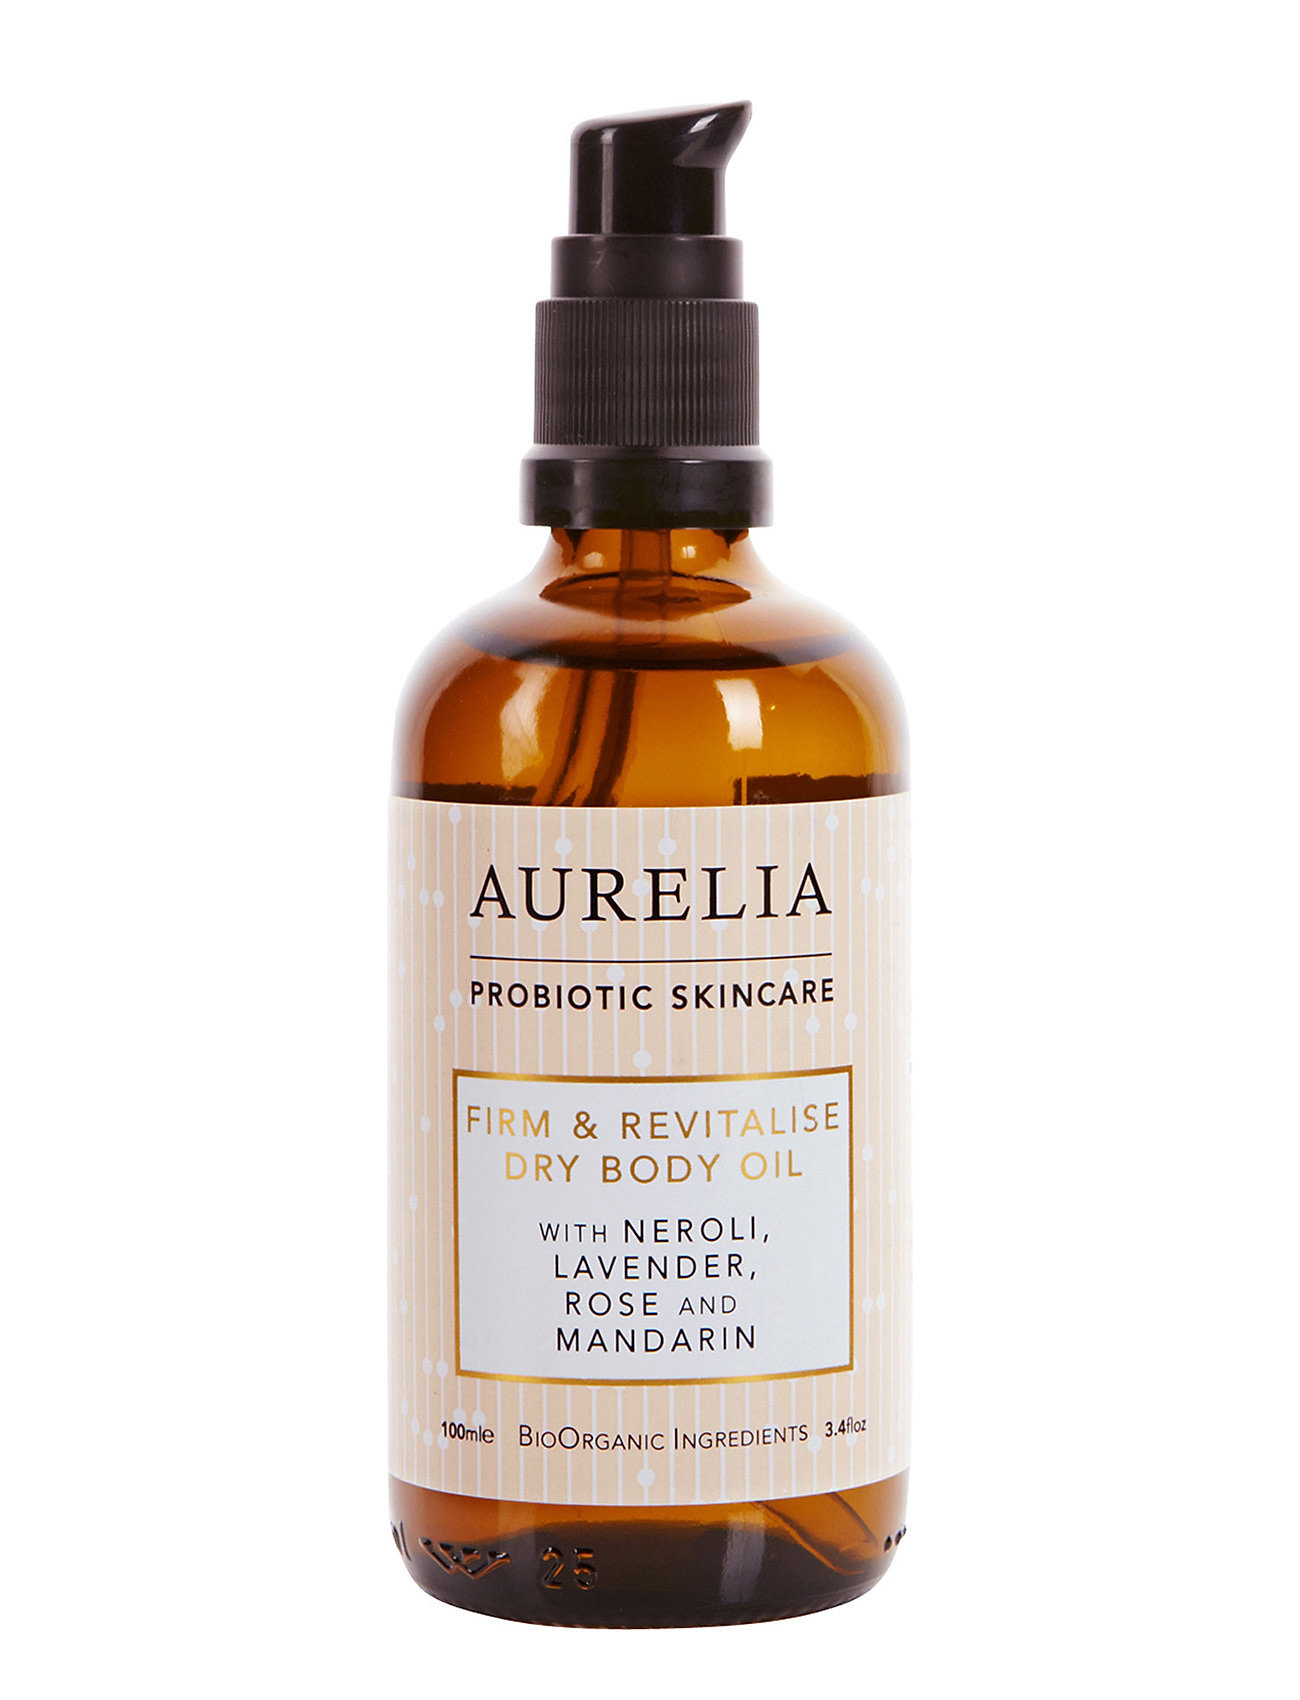 Image of Firm & Revitalise Dry Body Oil 100 Ml. Beauty WOMEN Skin Care Body Body Oils Nude Aurelia Probiotic Skincare (3195195639)